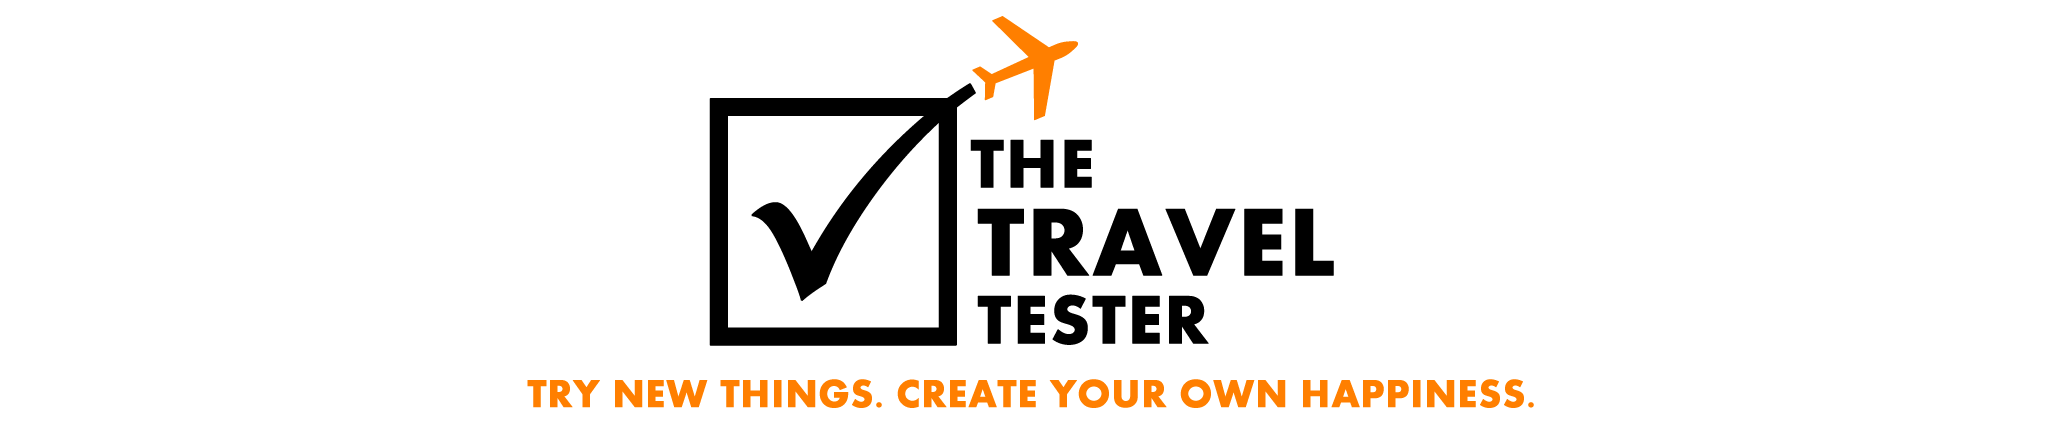 The Travel Tester - Let's Try Something New Today!